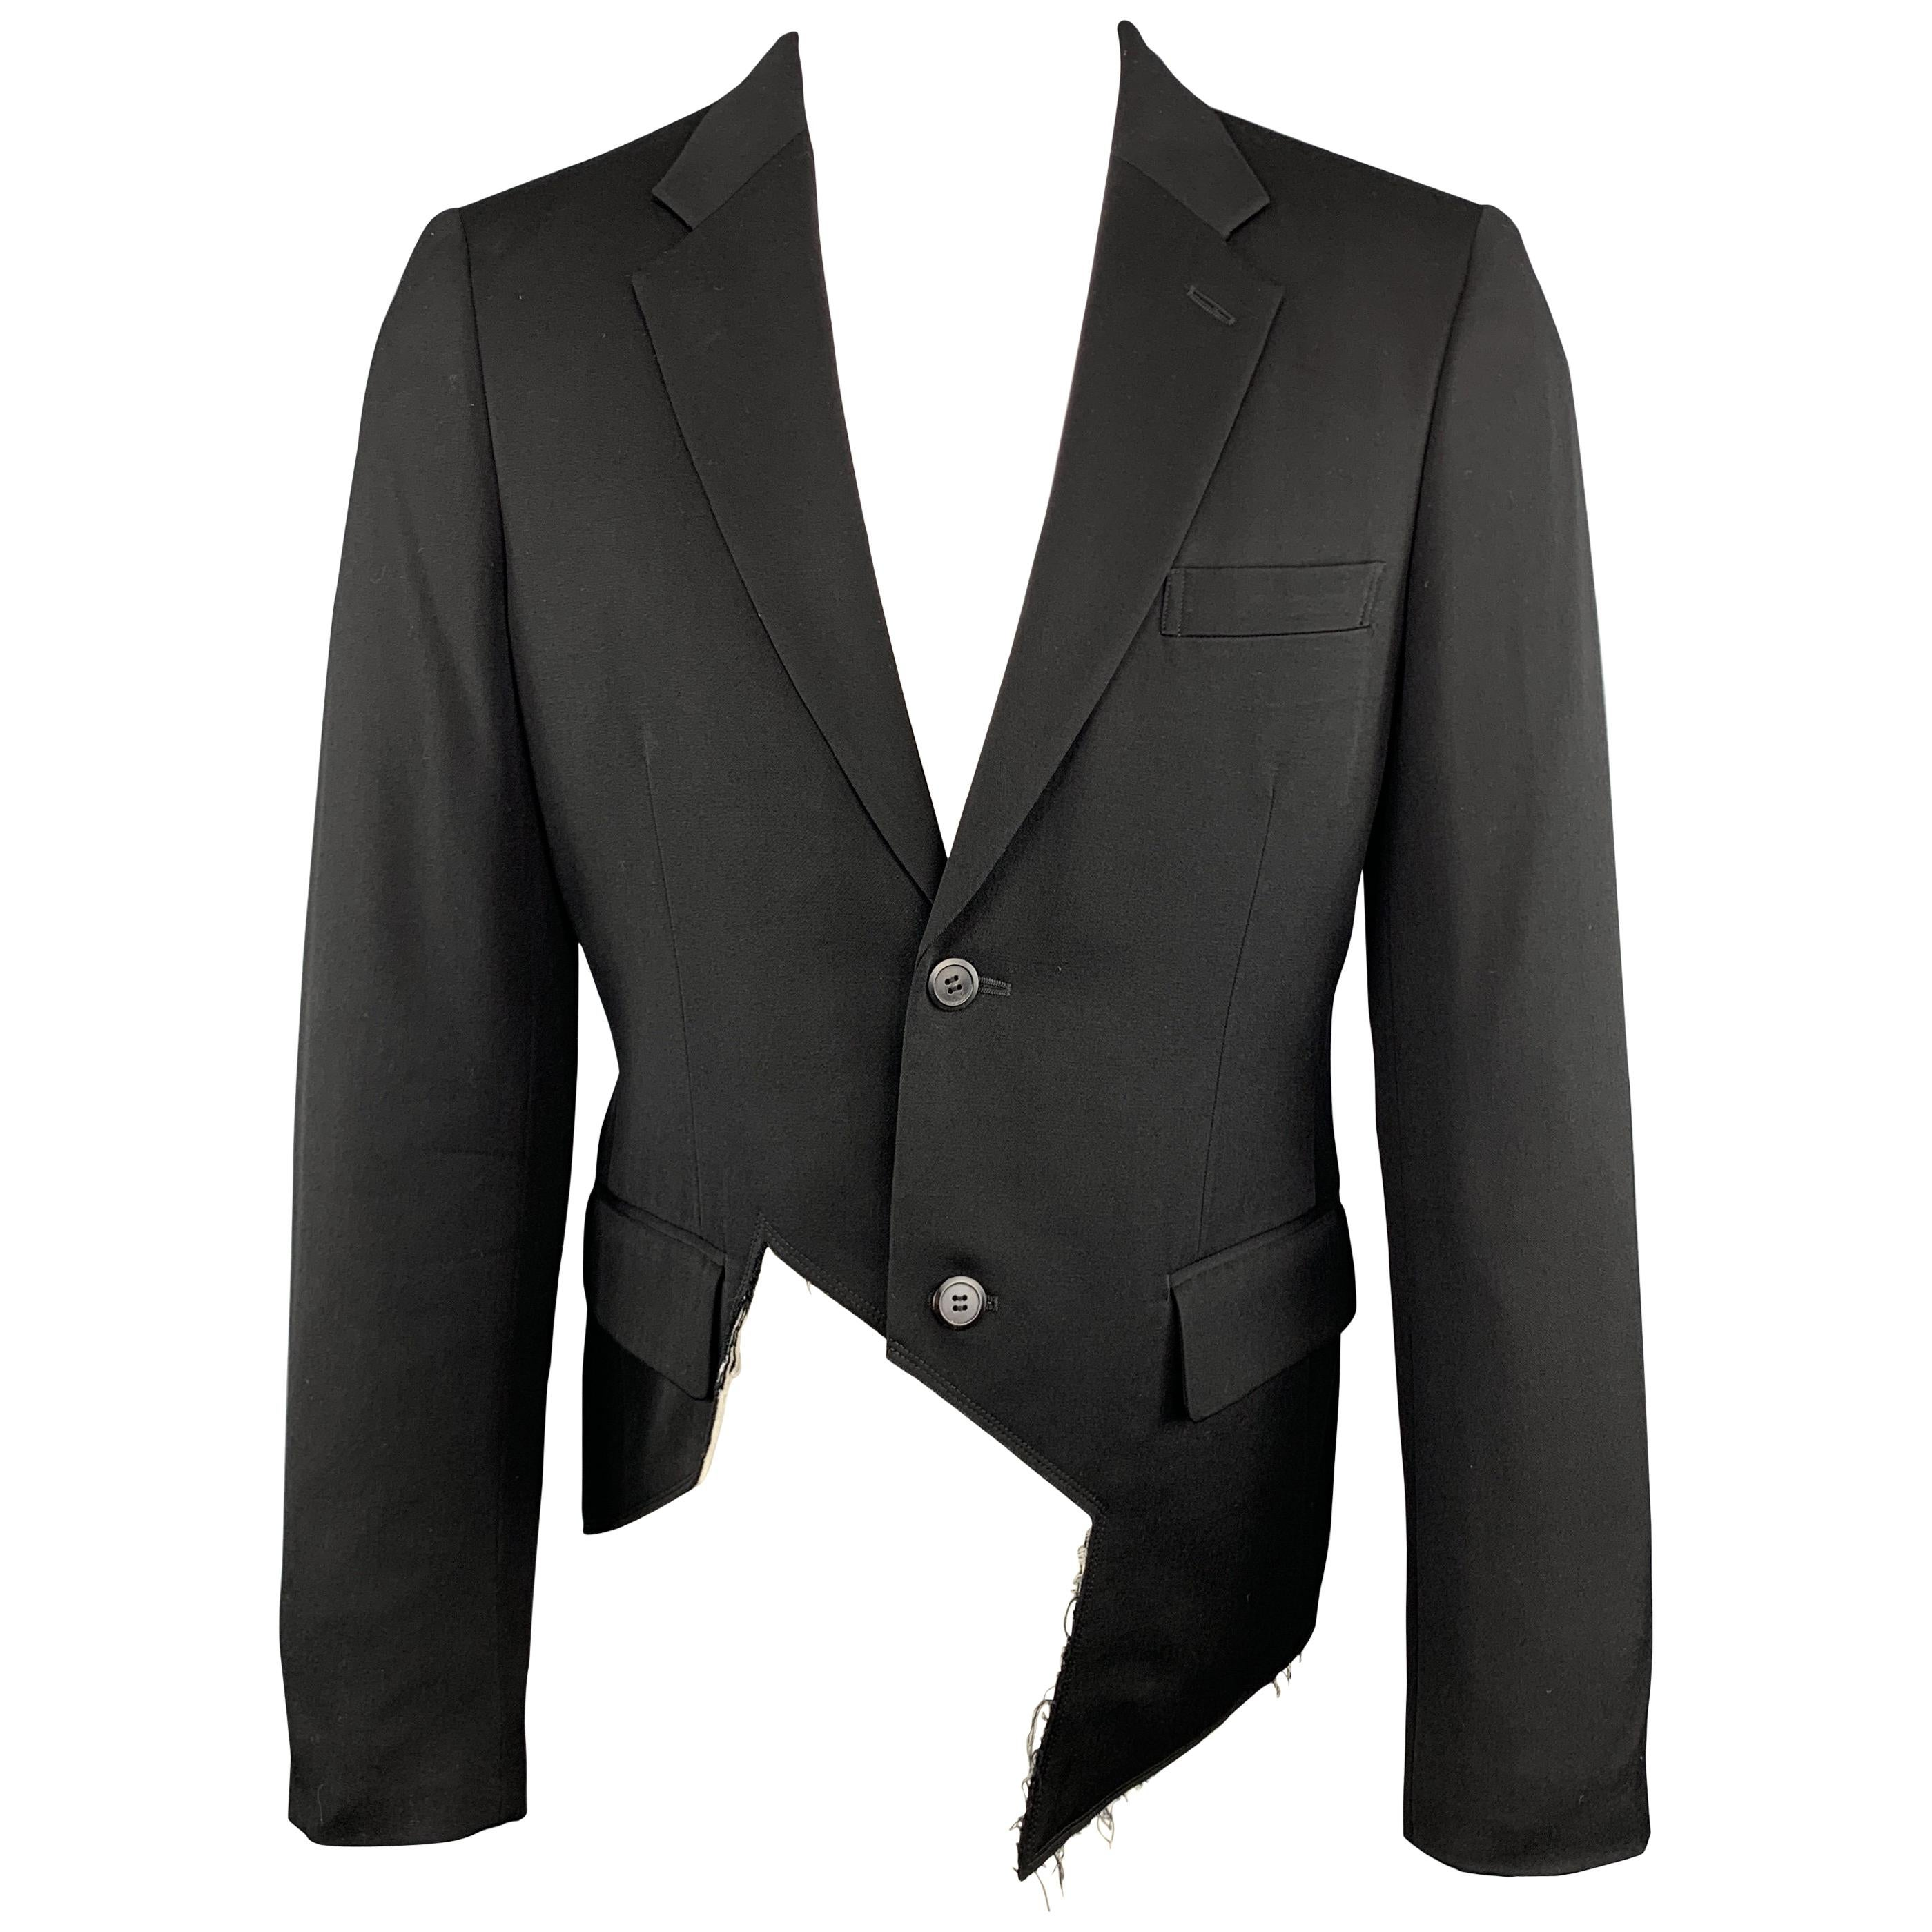 be9406de3 Sui GENERIS Consignment Jackets - 1stdibs - Page 4